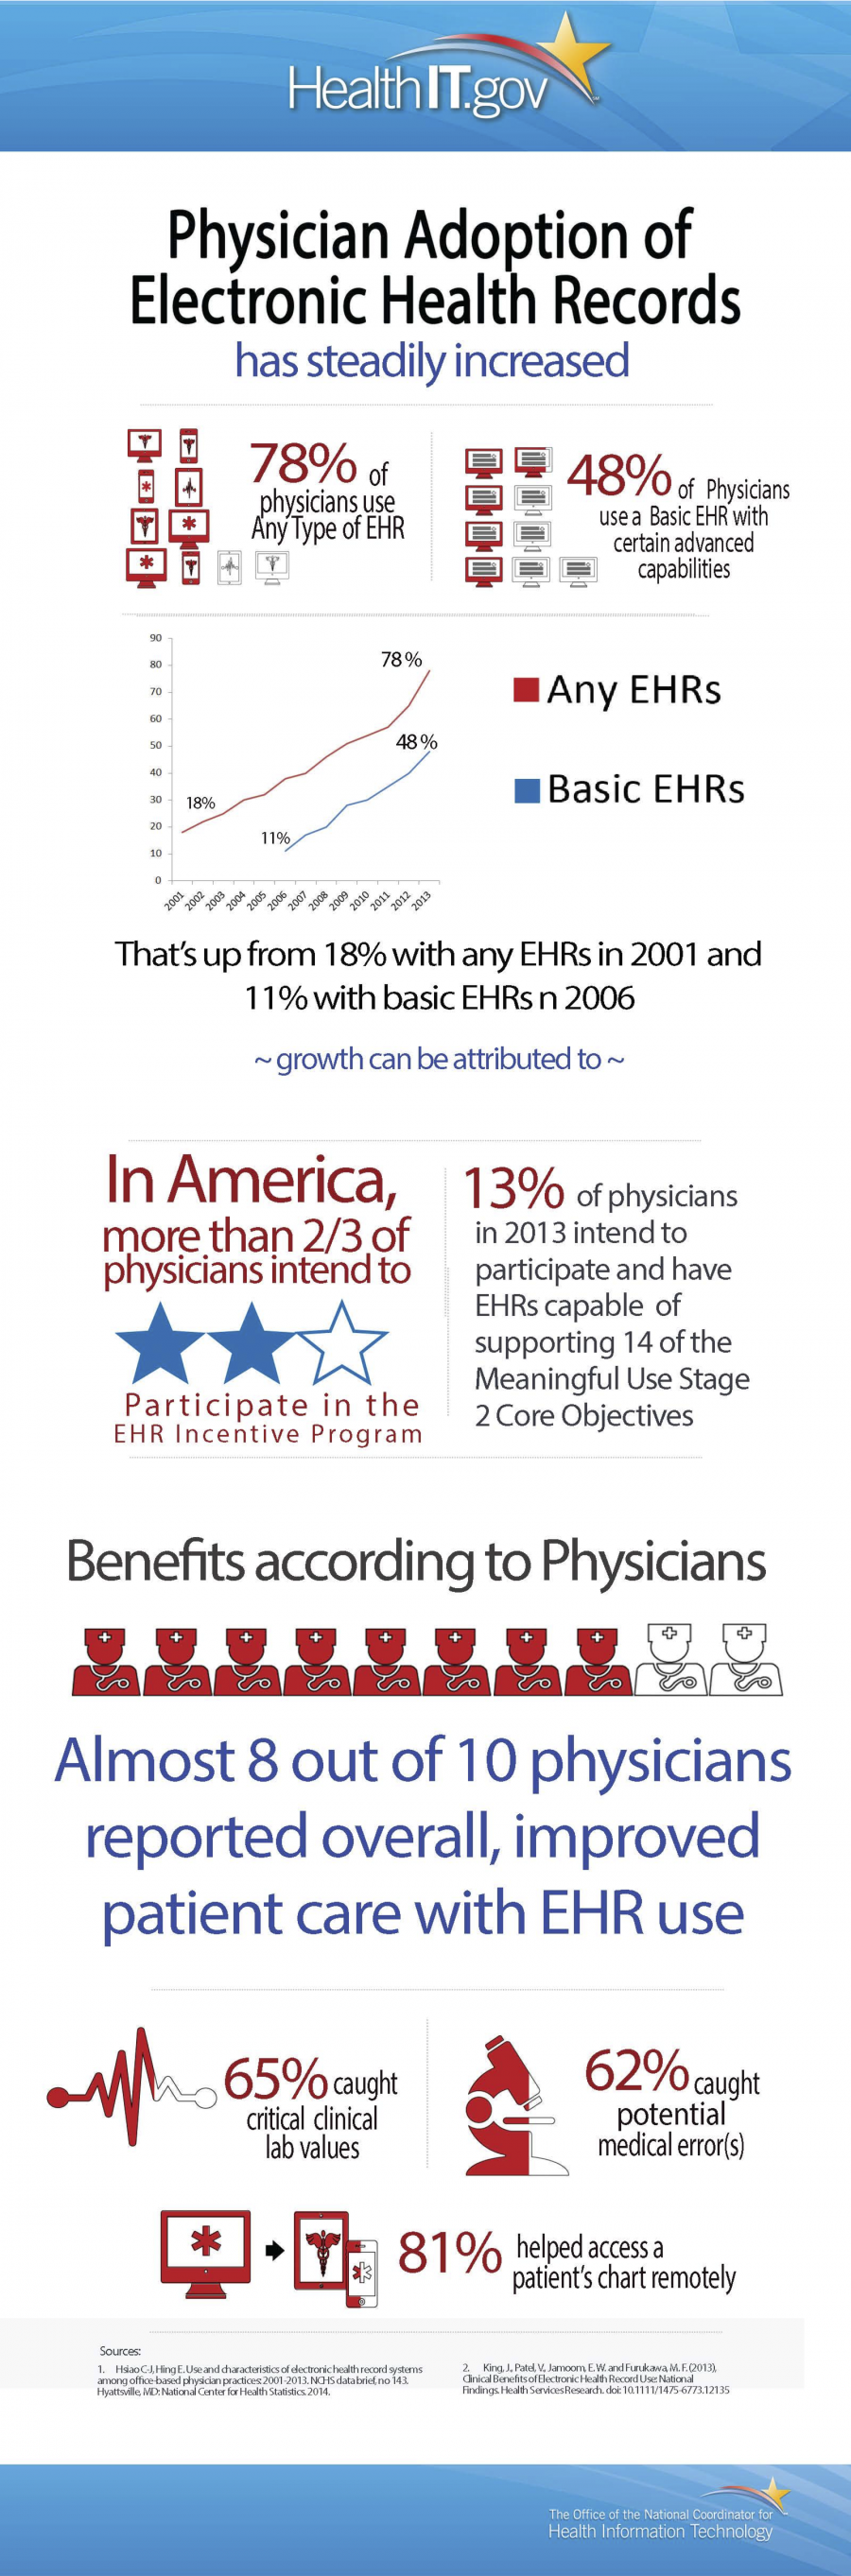 Physician Adoption of EHRs